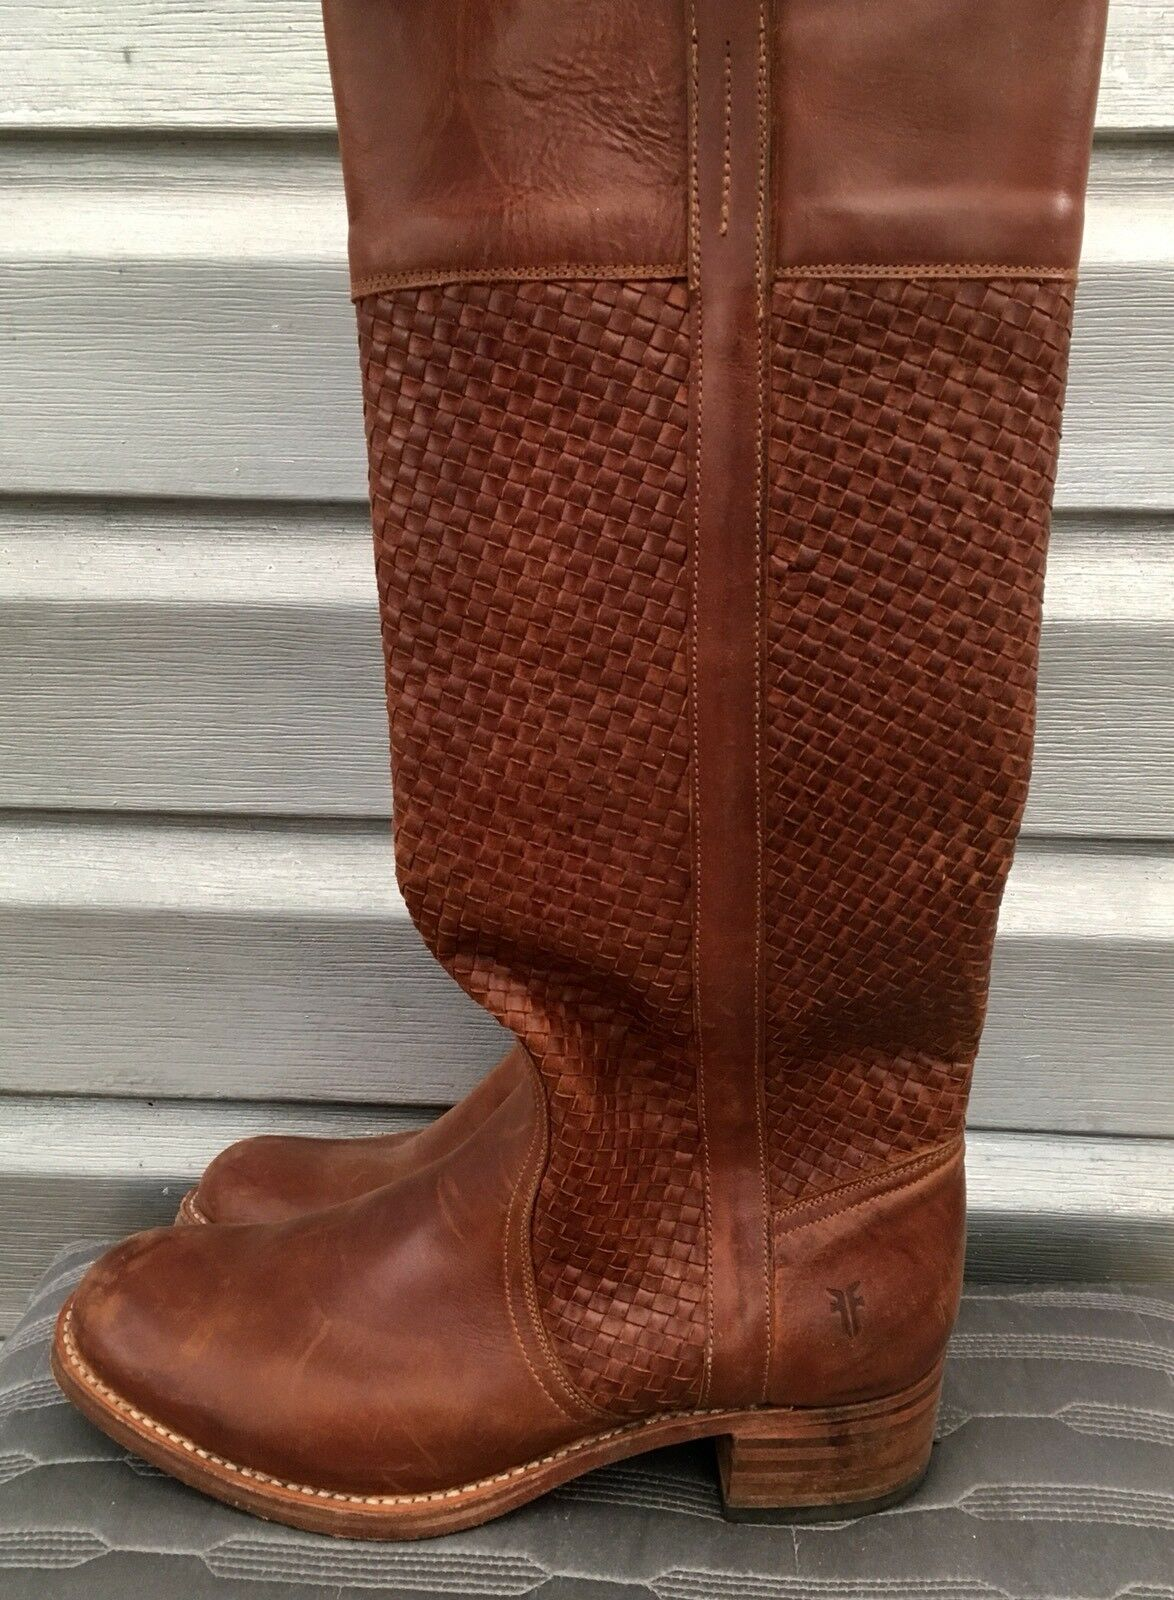 FRYE Samantha Brown Woven Leather Knee High Basket Weave Boots SOLD OUT